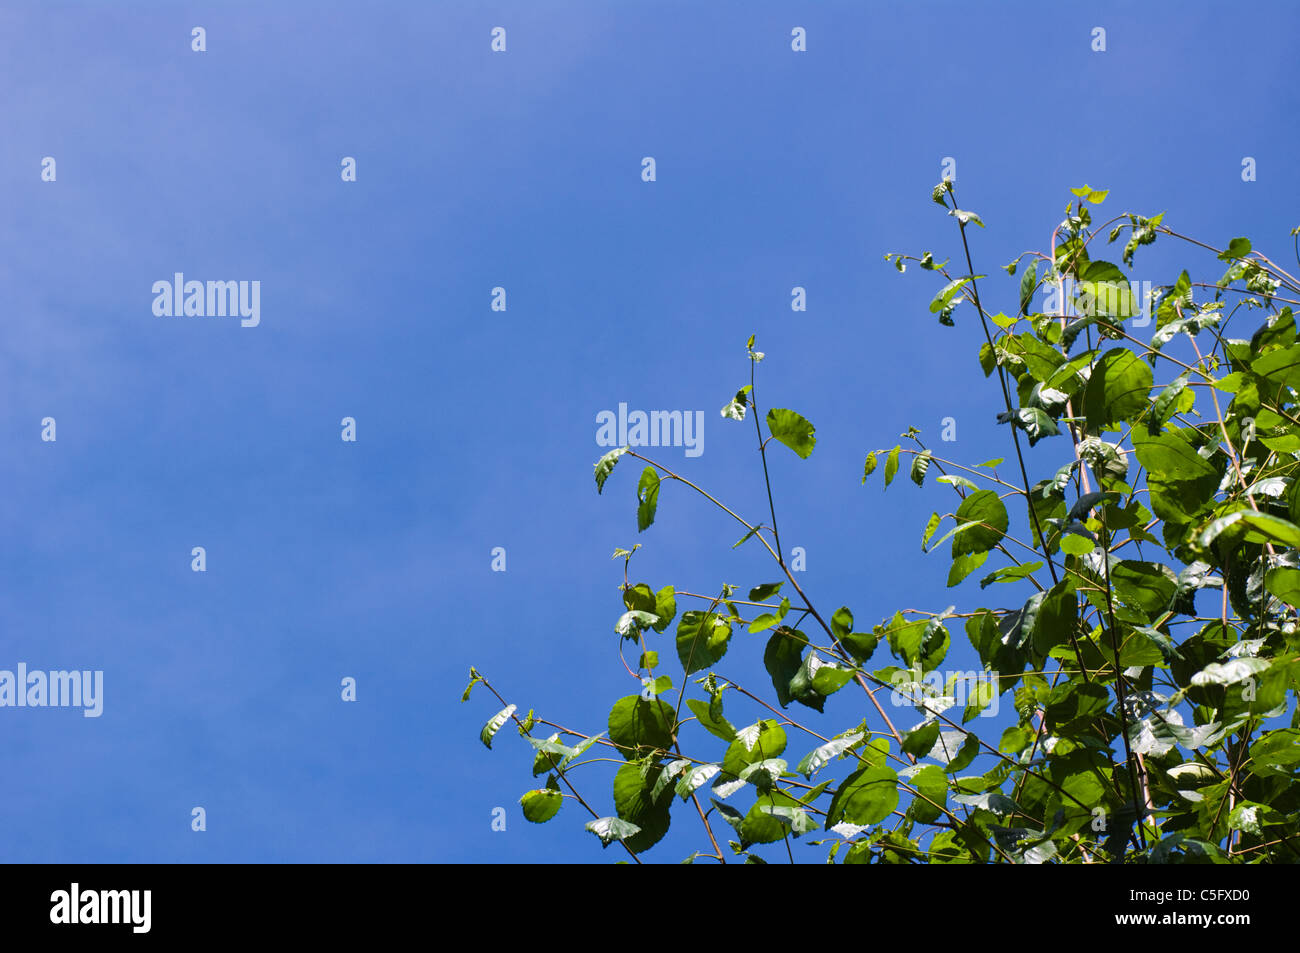 Expanse of blue summer sky with green leaves of birch tree in foreground - Stock Image